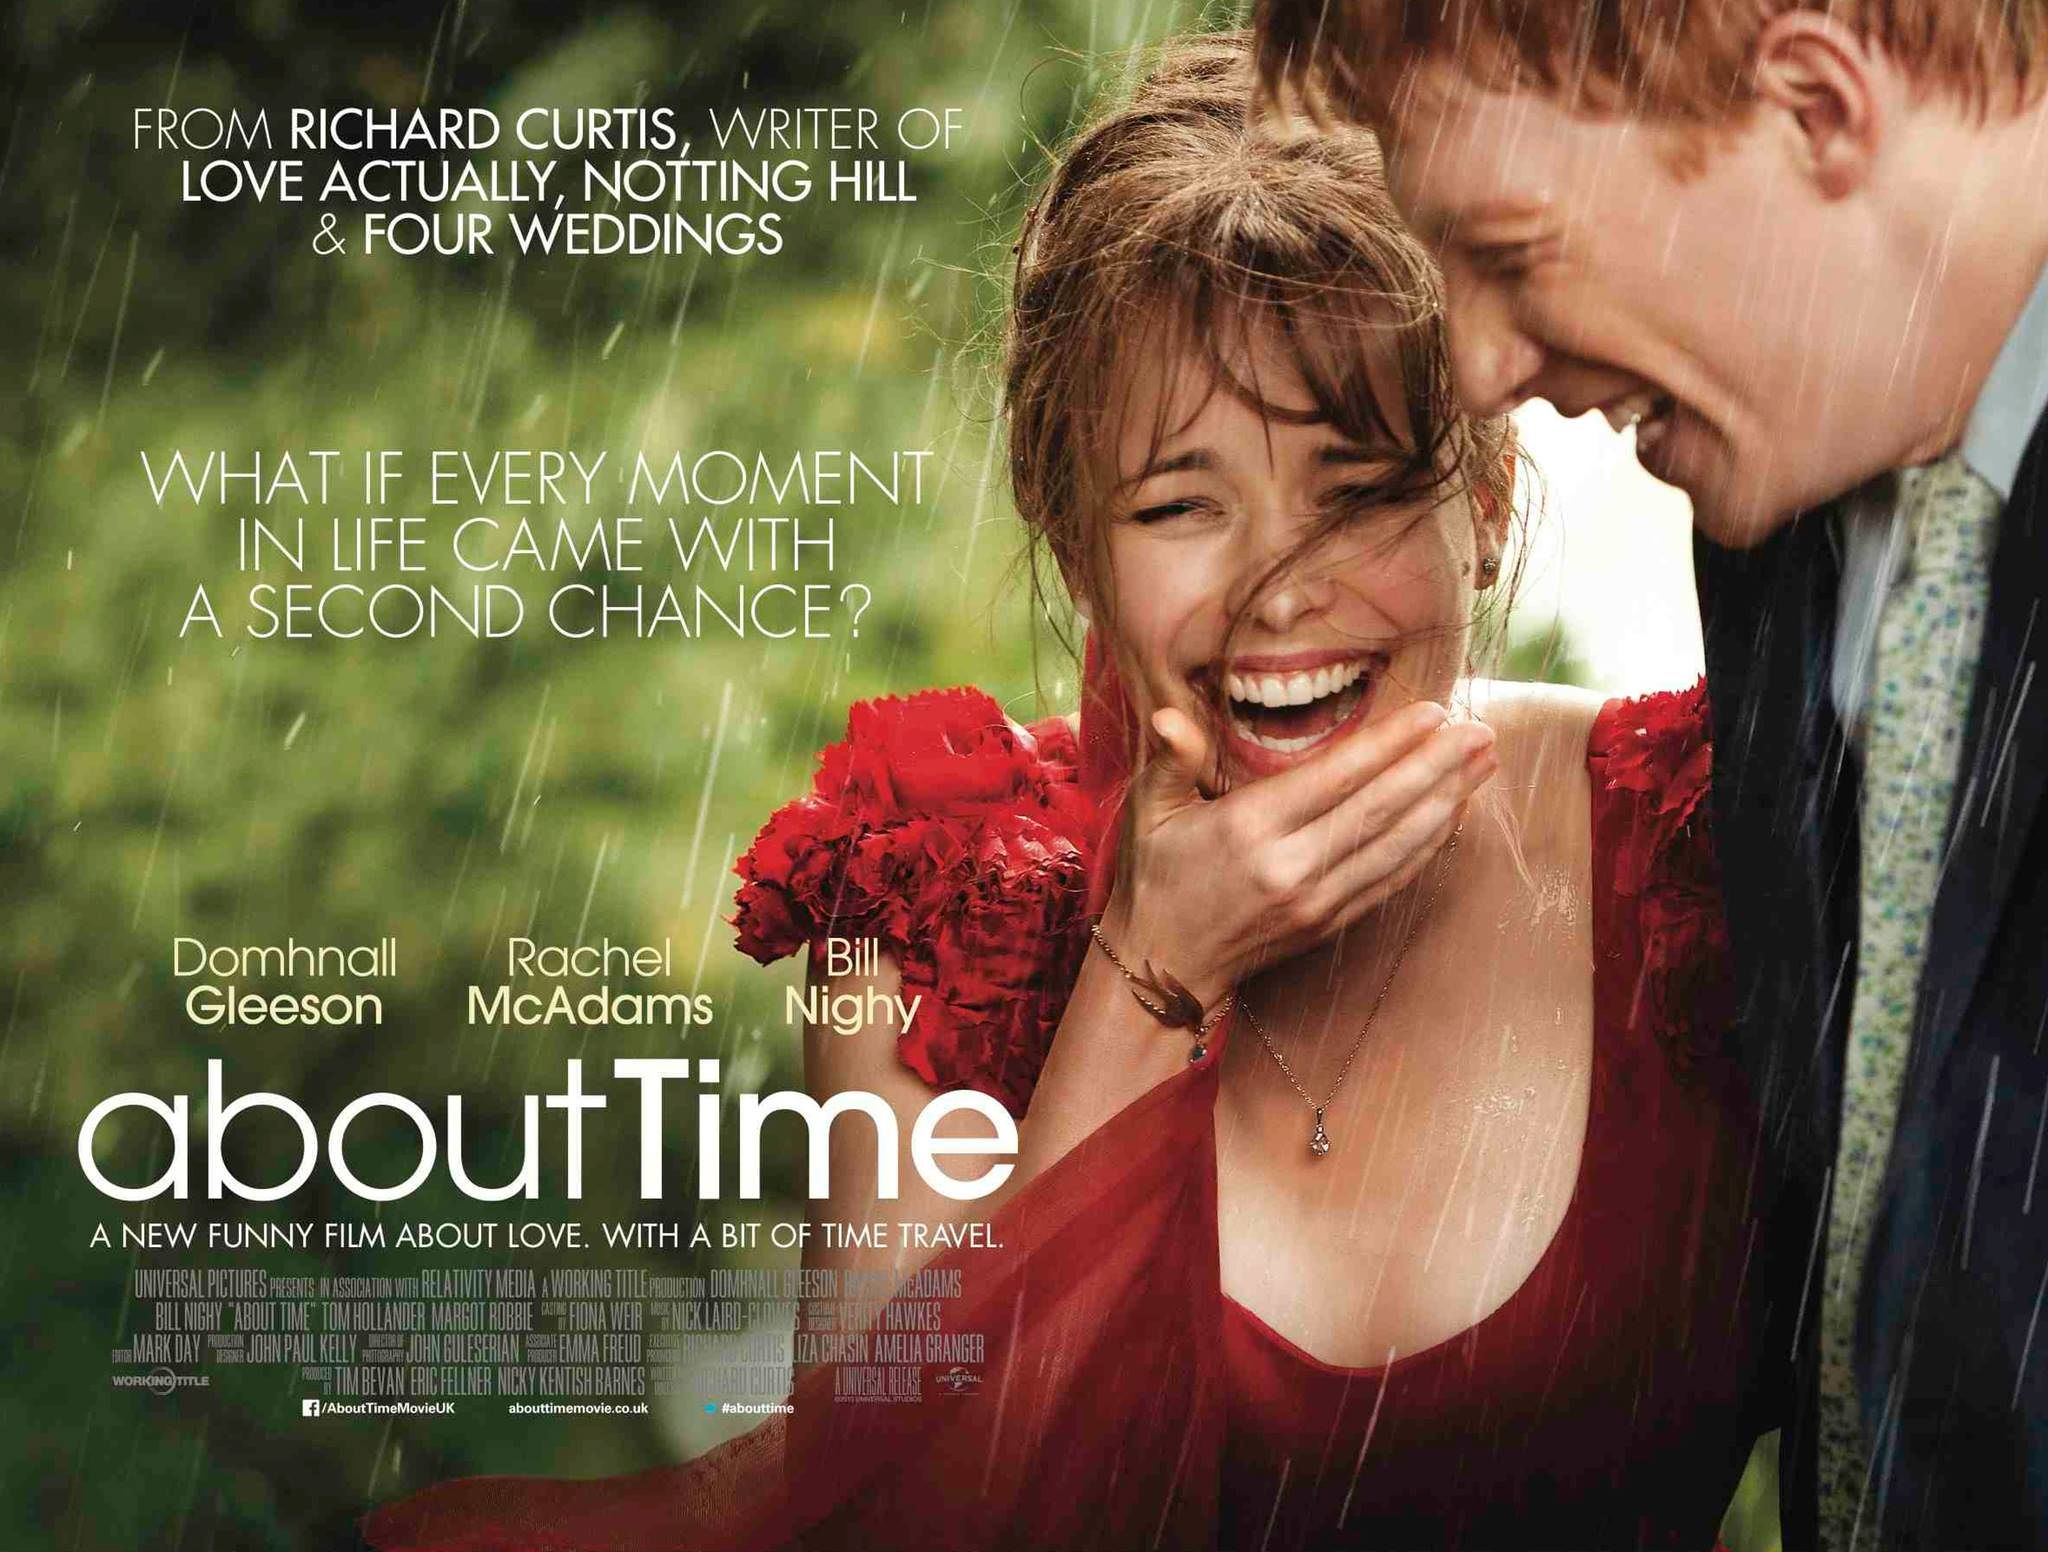 about-time-uk-quad-poster-its-about-time-you-watched-about-time-jpeg-54636